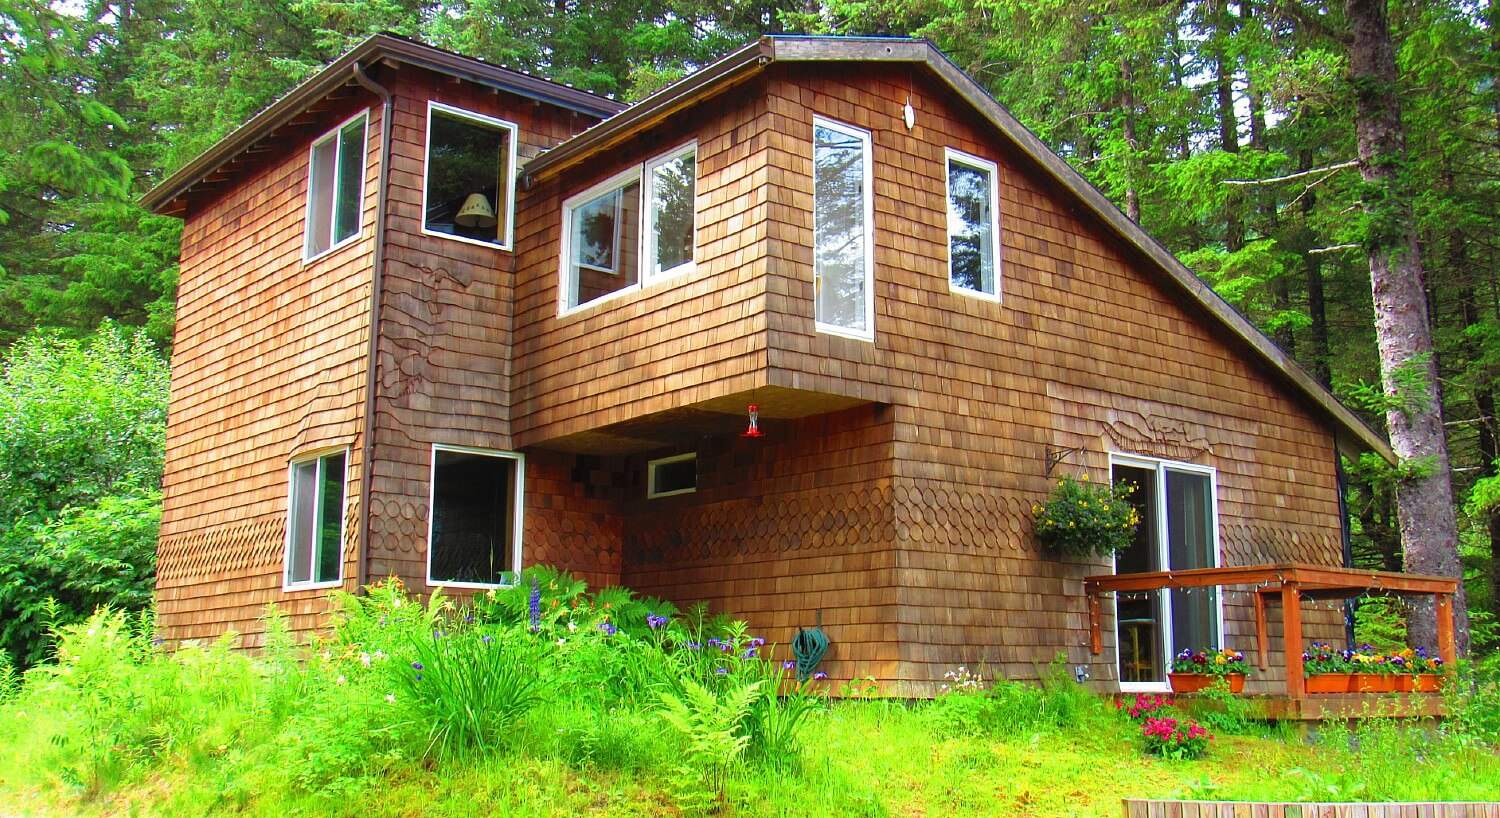 Tall brown shingled cabin with lots of windows nestled in a wooded area with green trees